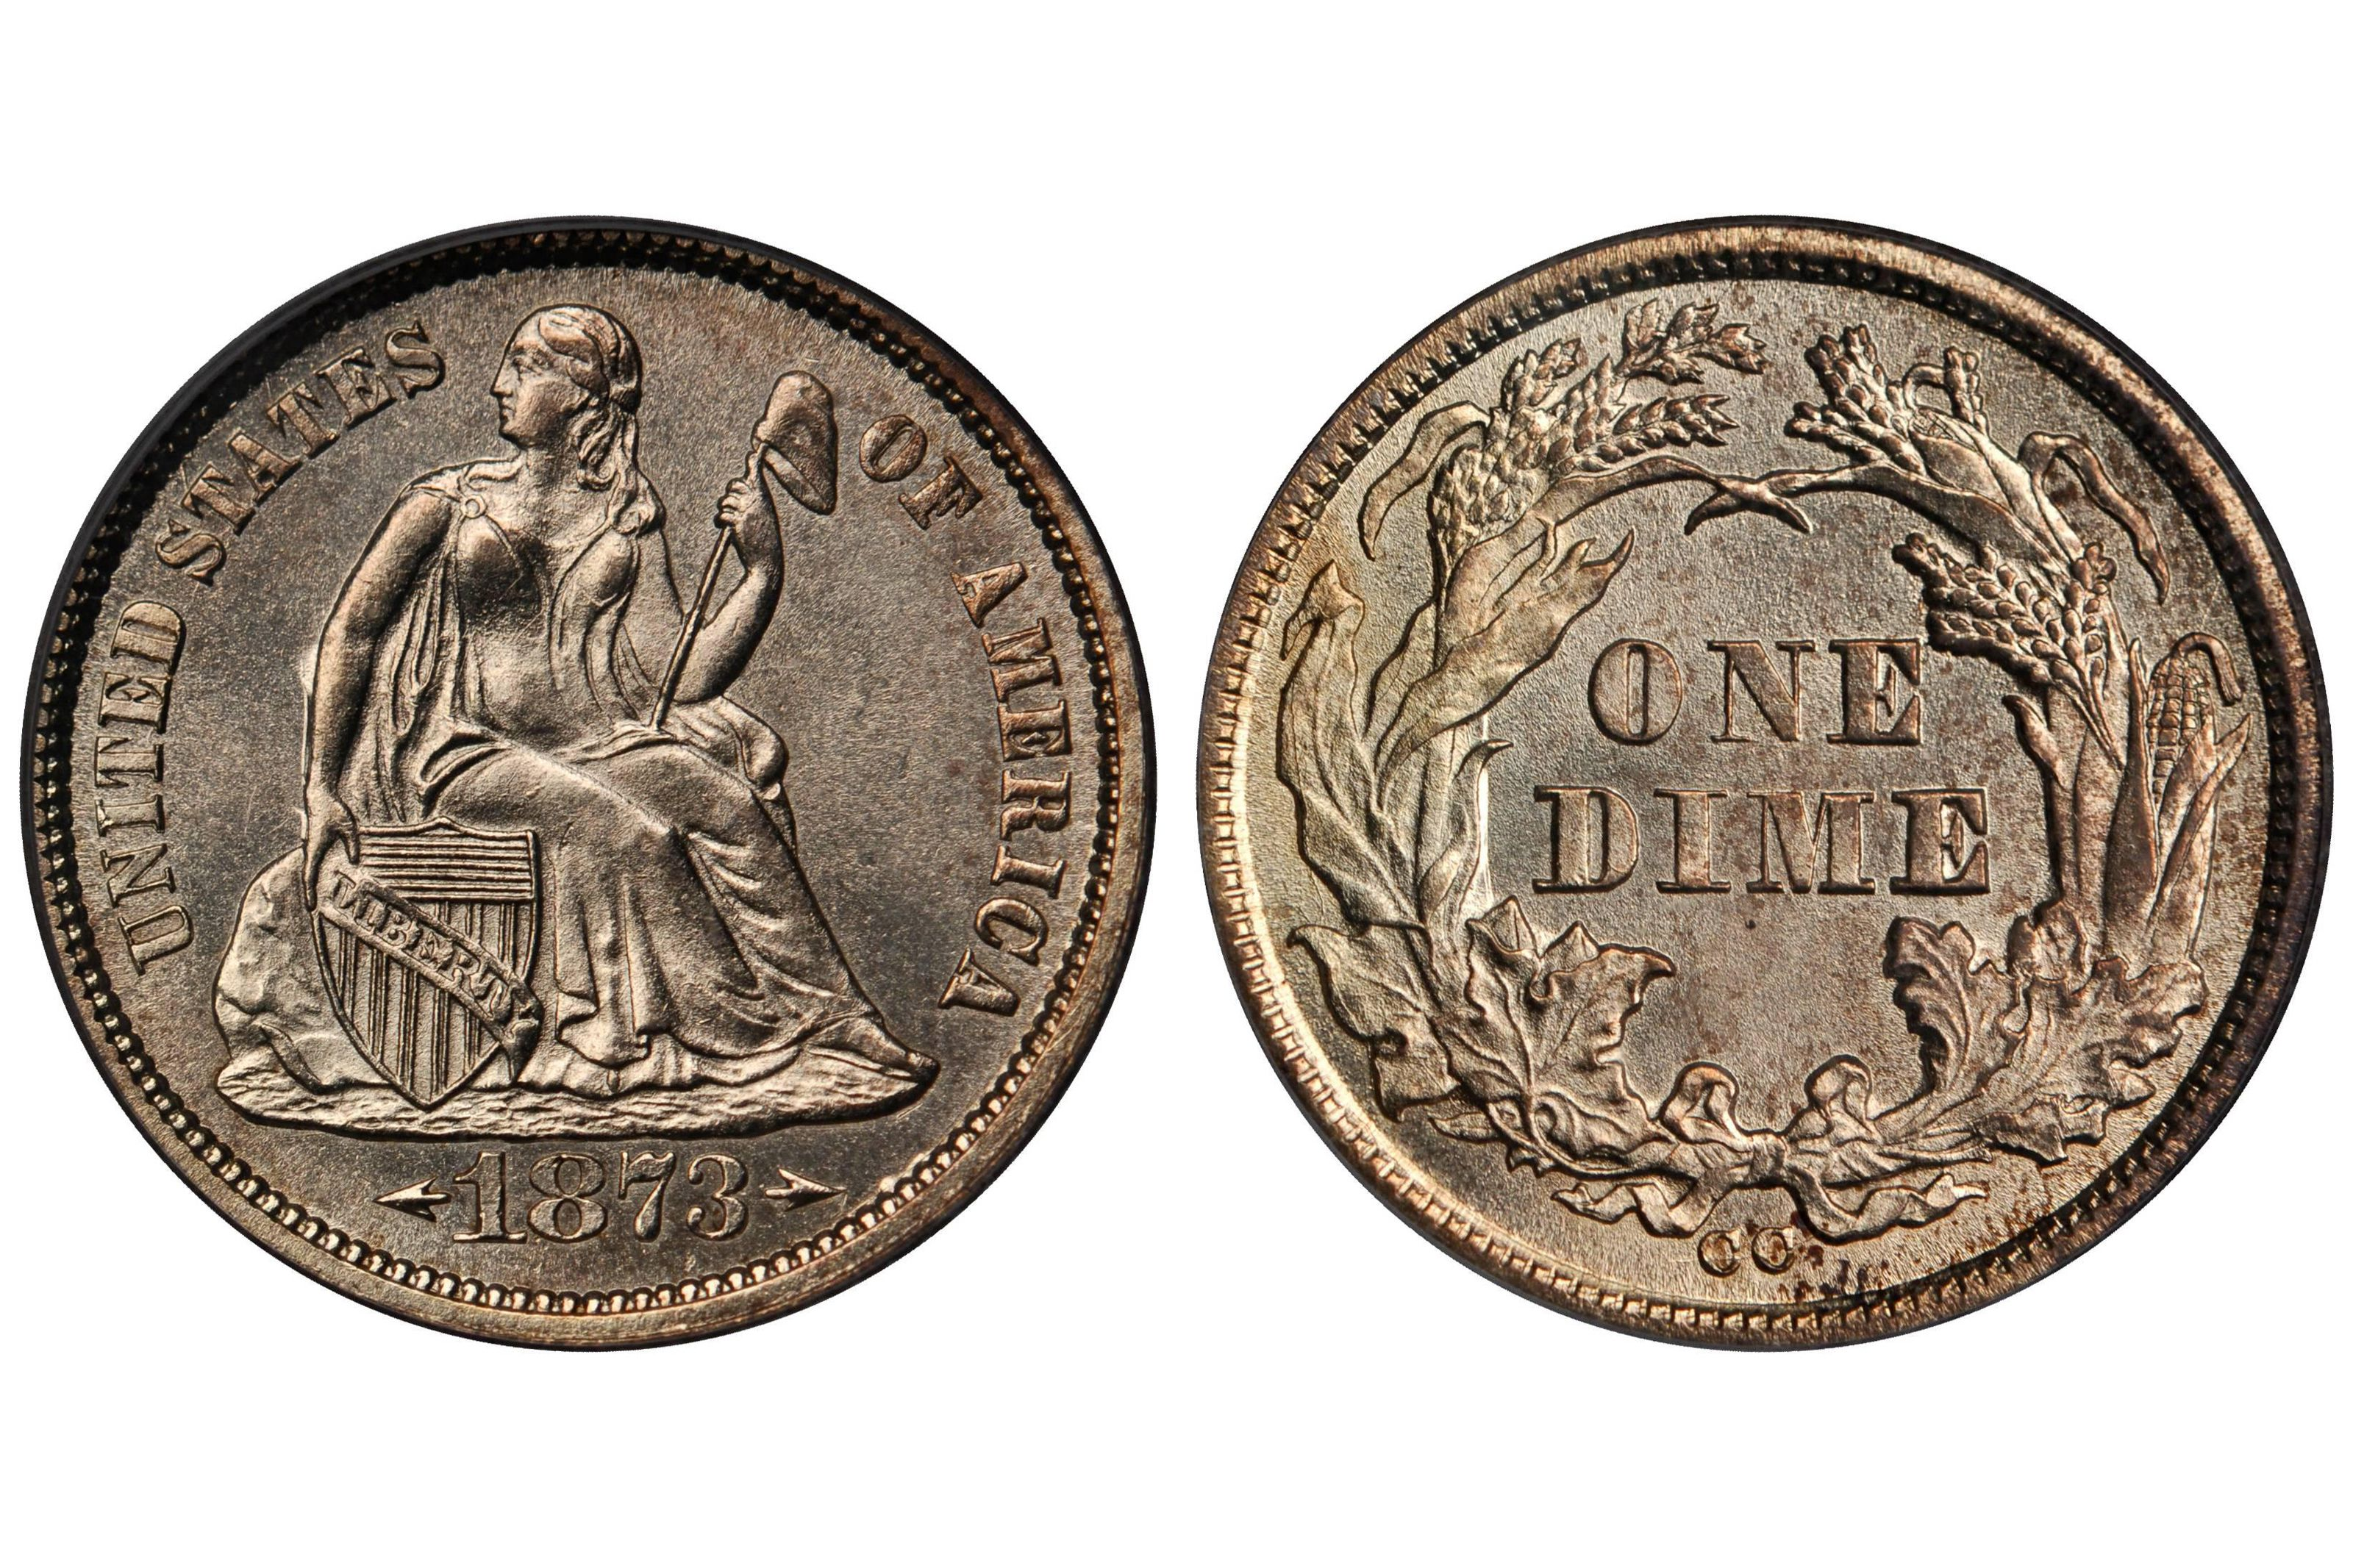 1873-CC Liberty Seated Dime - Arrows at Date